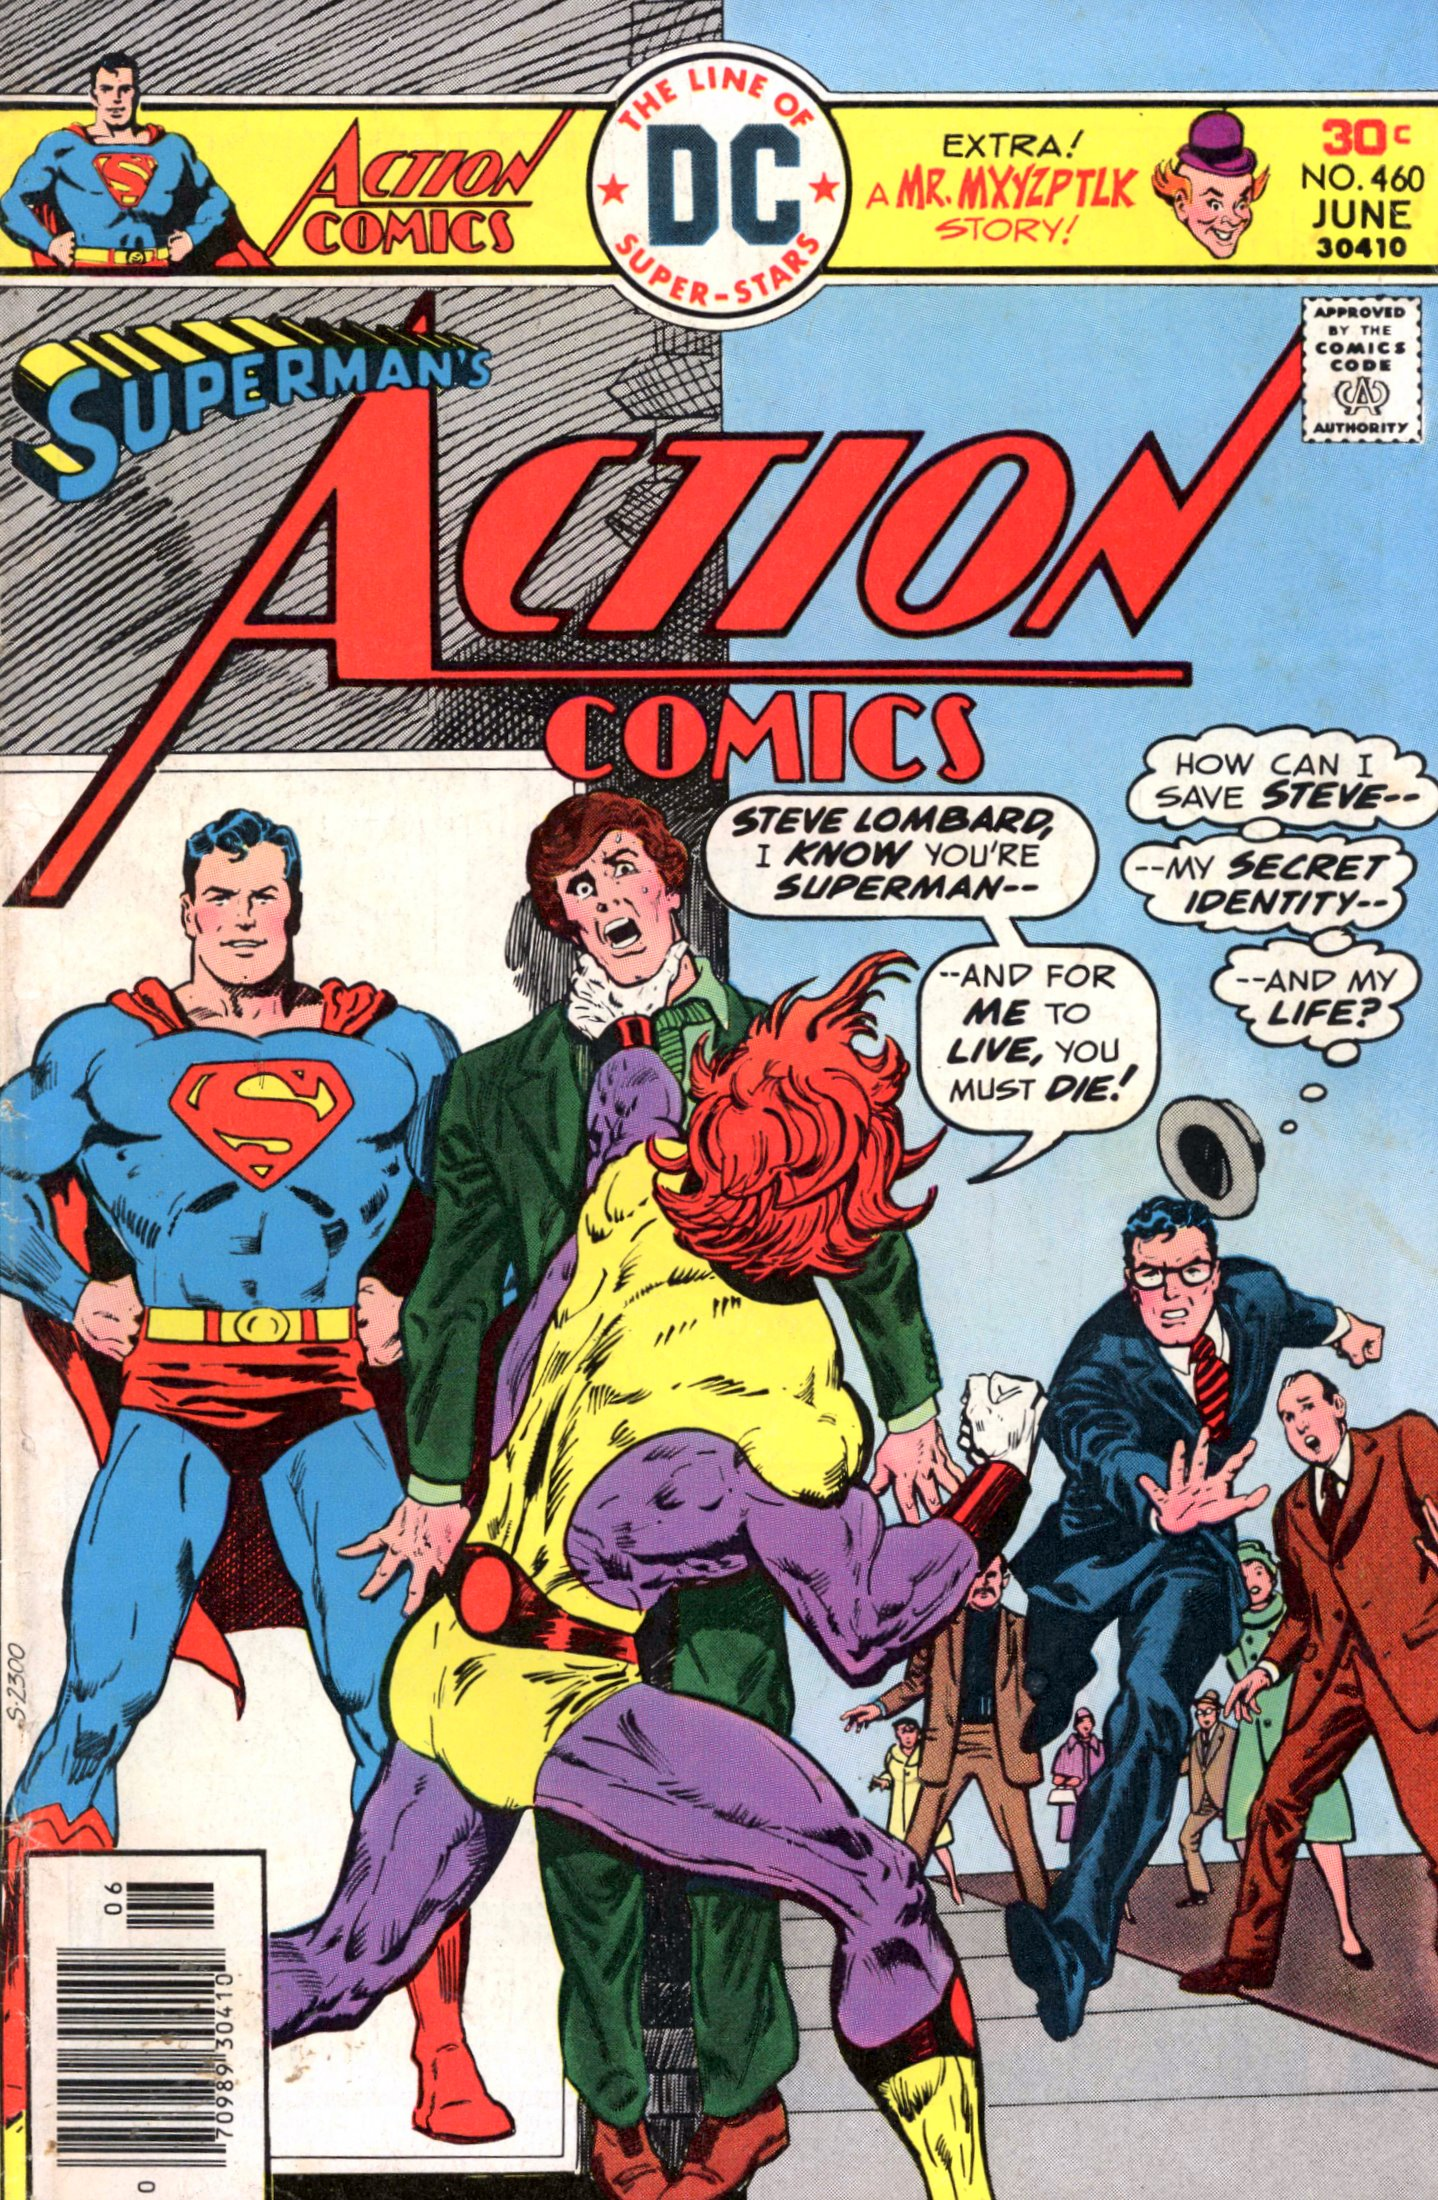 Read online Action Comics (1938) comic -  Issue #460 - 1